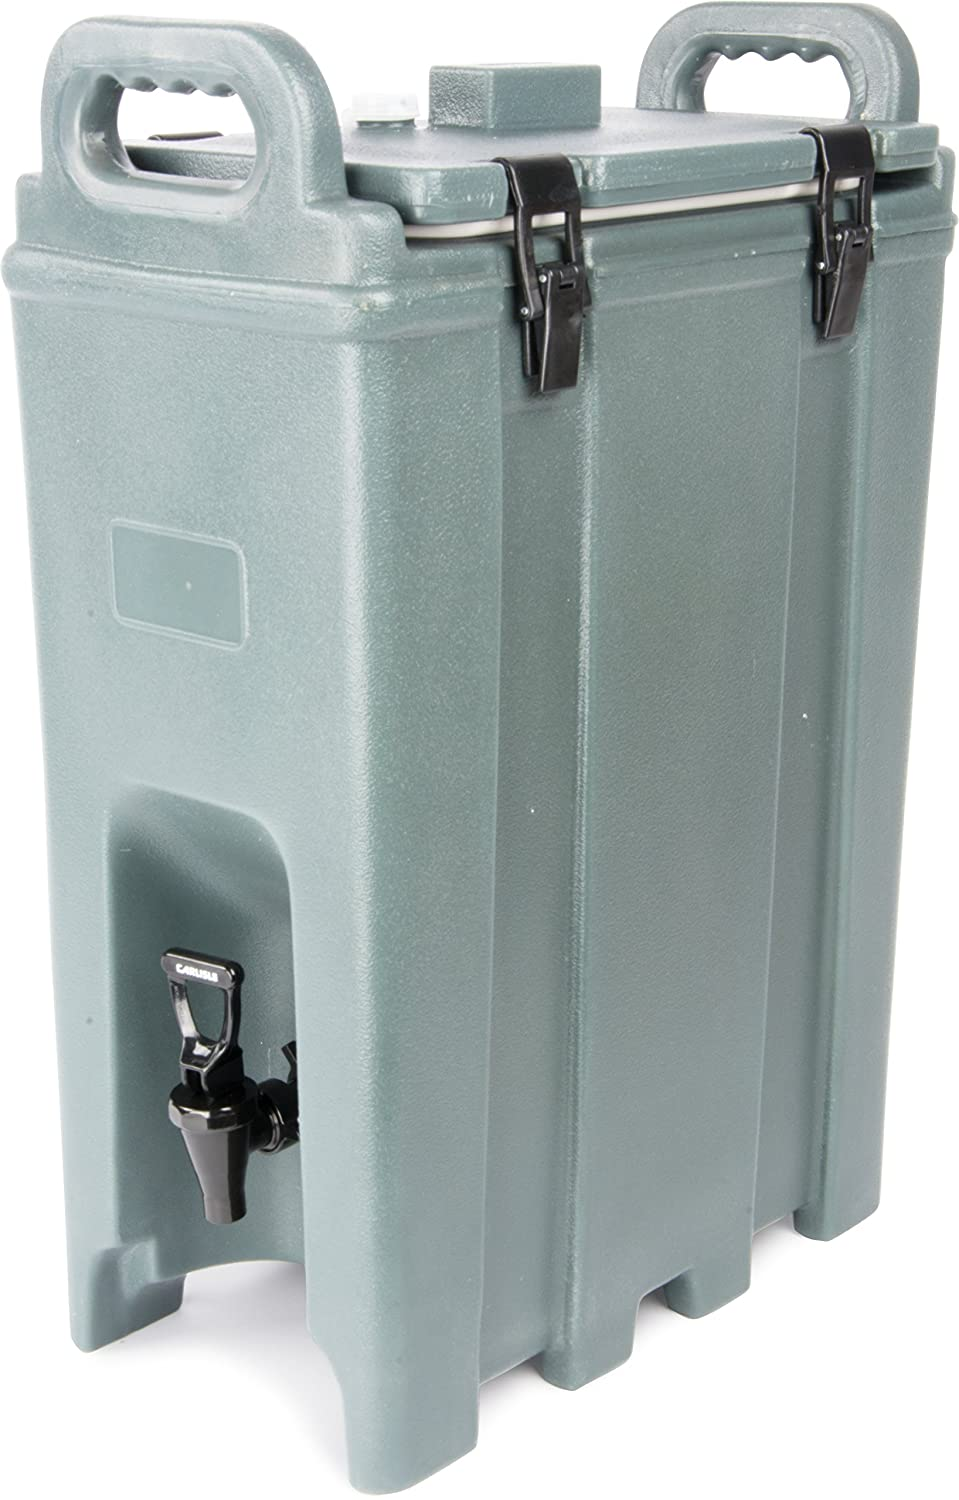 Carlisle LD500N59 Cateraide Insulated Beverage Server/Dispenser, 5 Gallon, Slate Blue